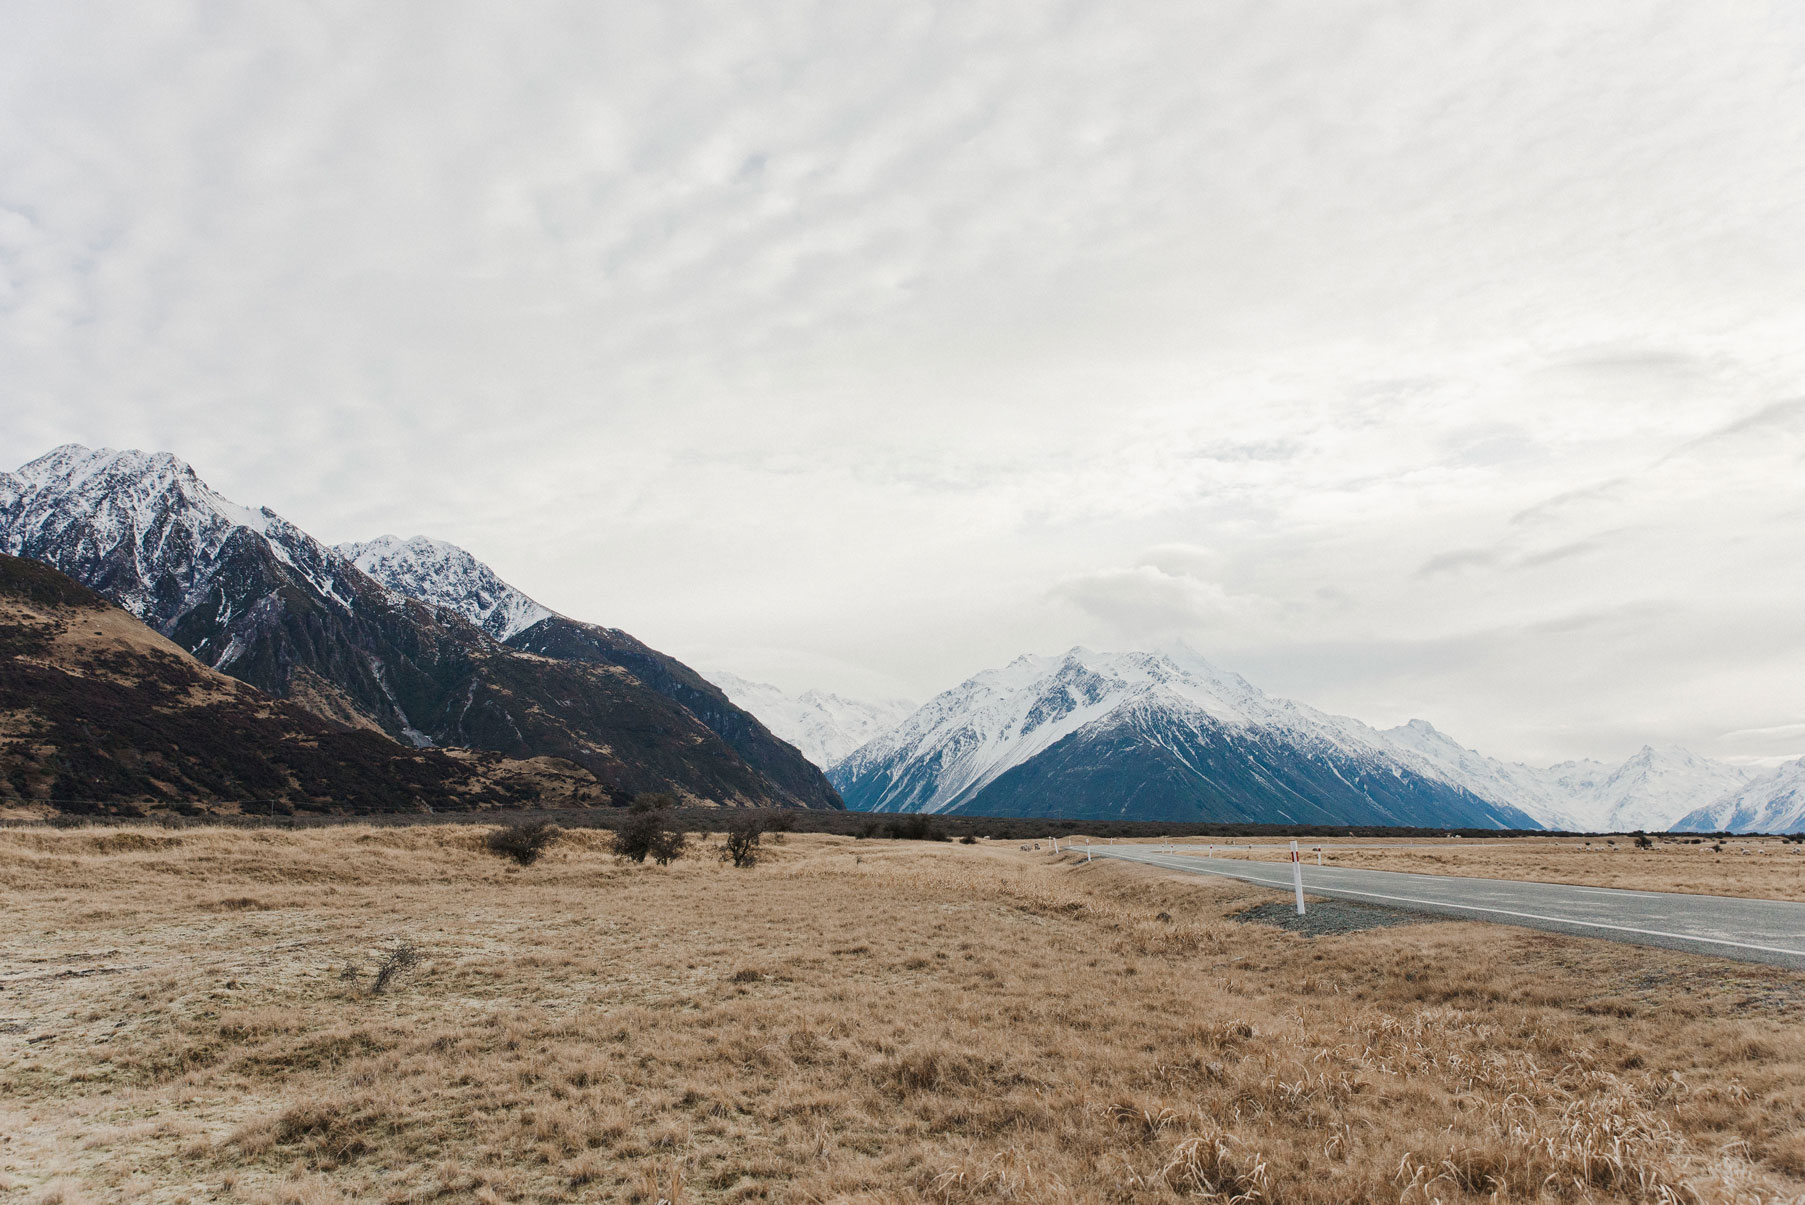 DSC_4093-MT-COOK-WEB.jpg